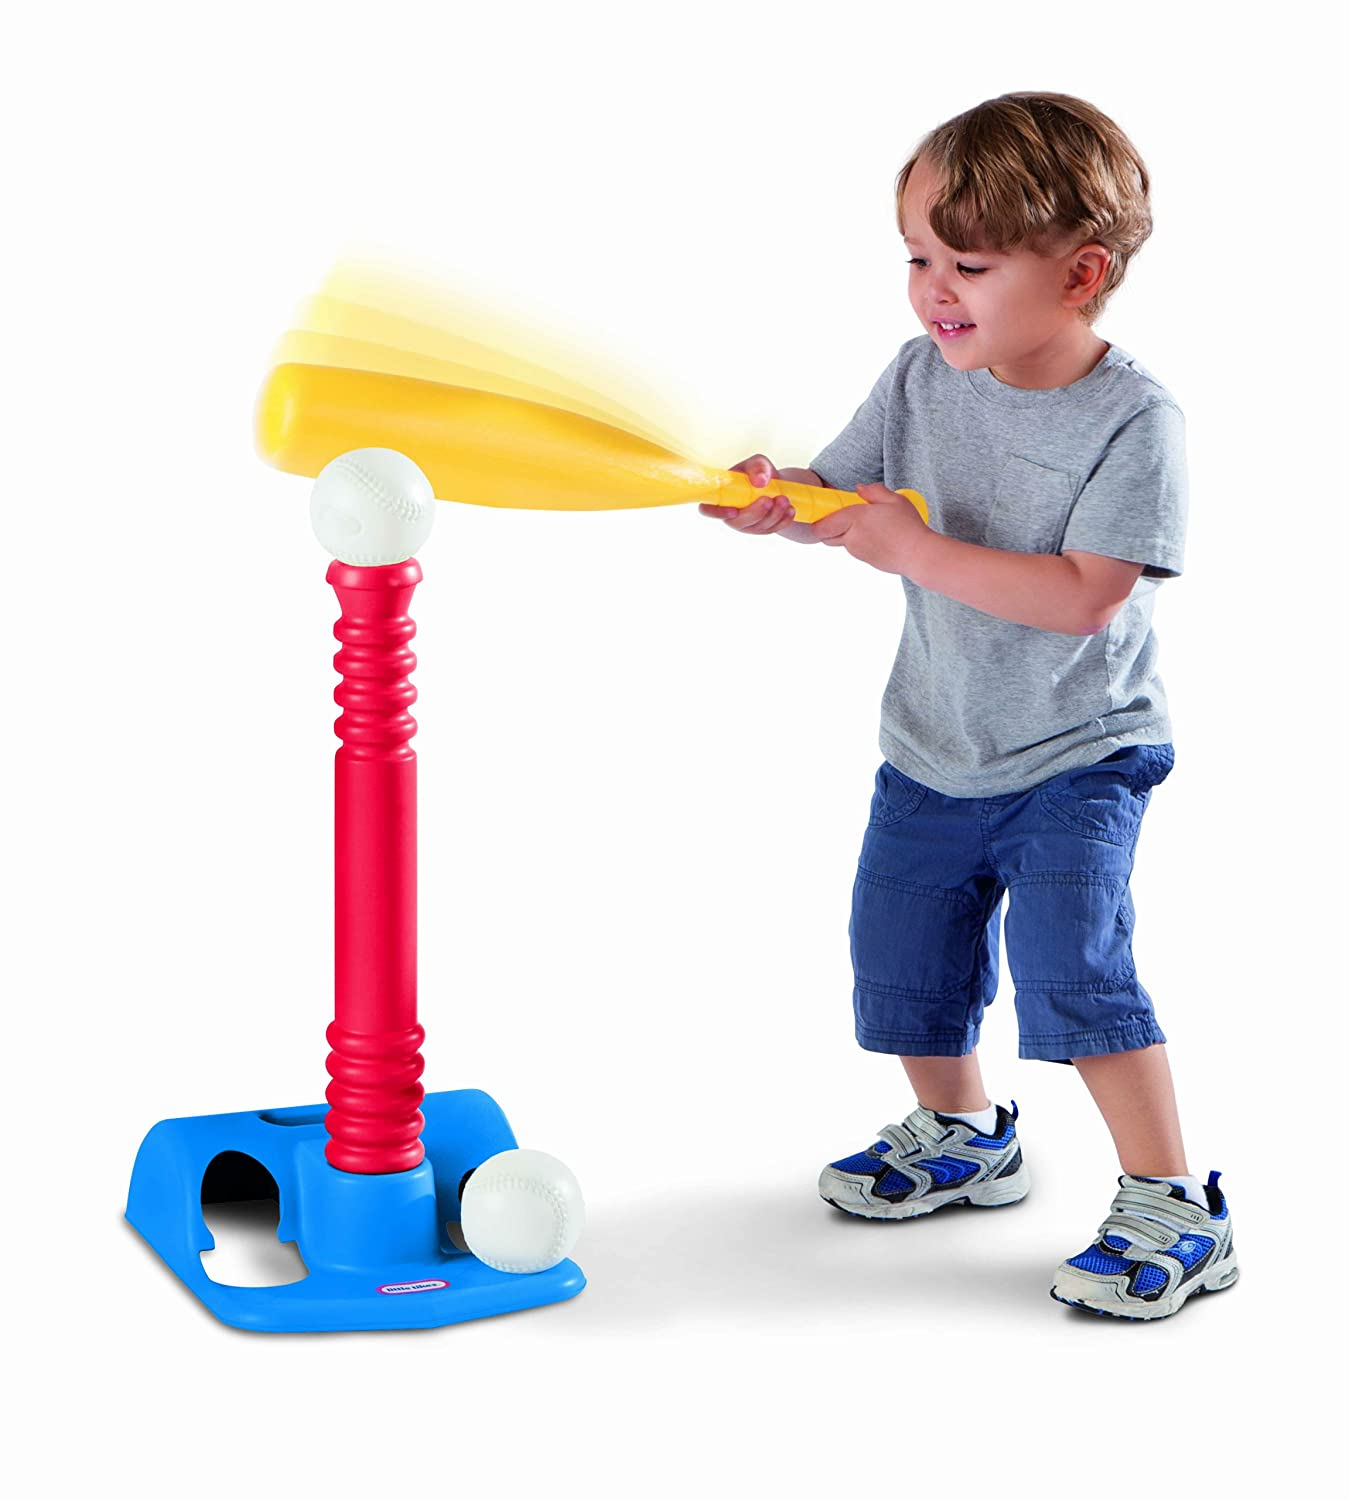 Best Toys For Kids The Best Toys For Sporty 2 Year